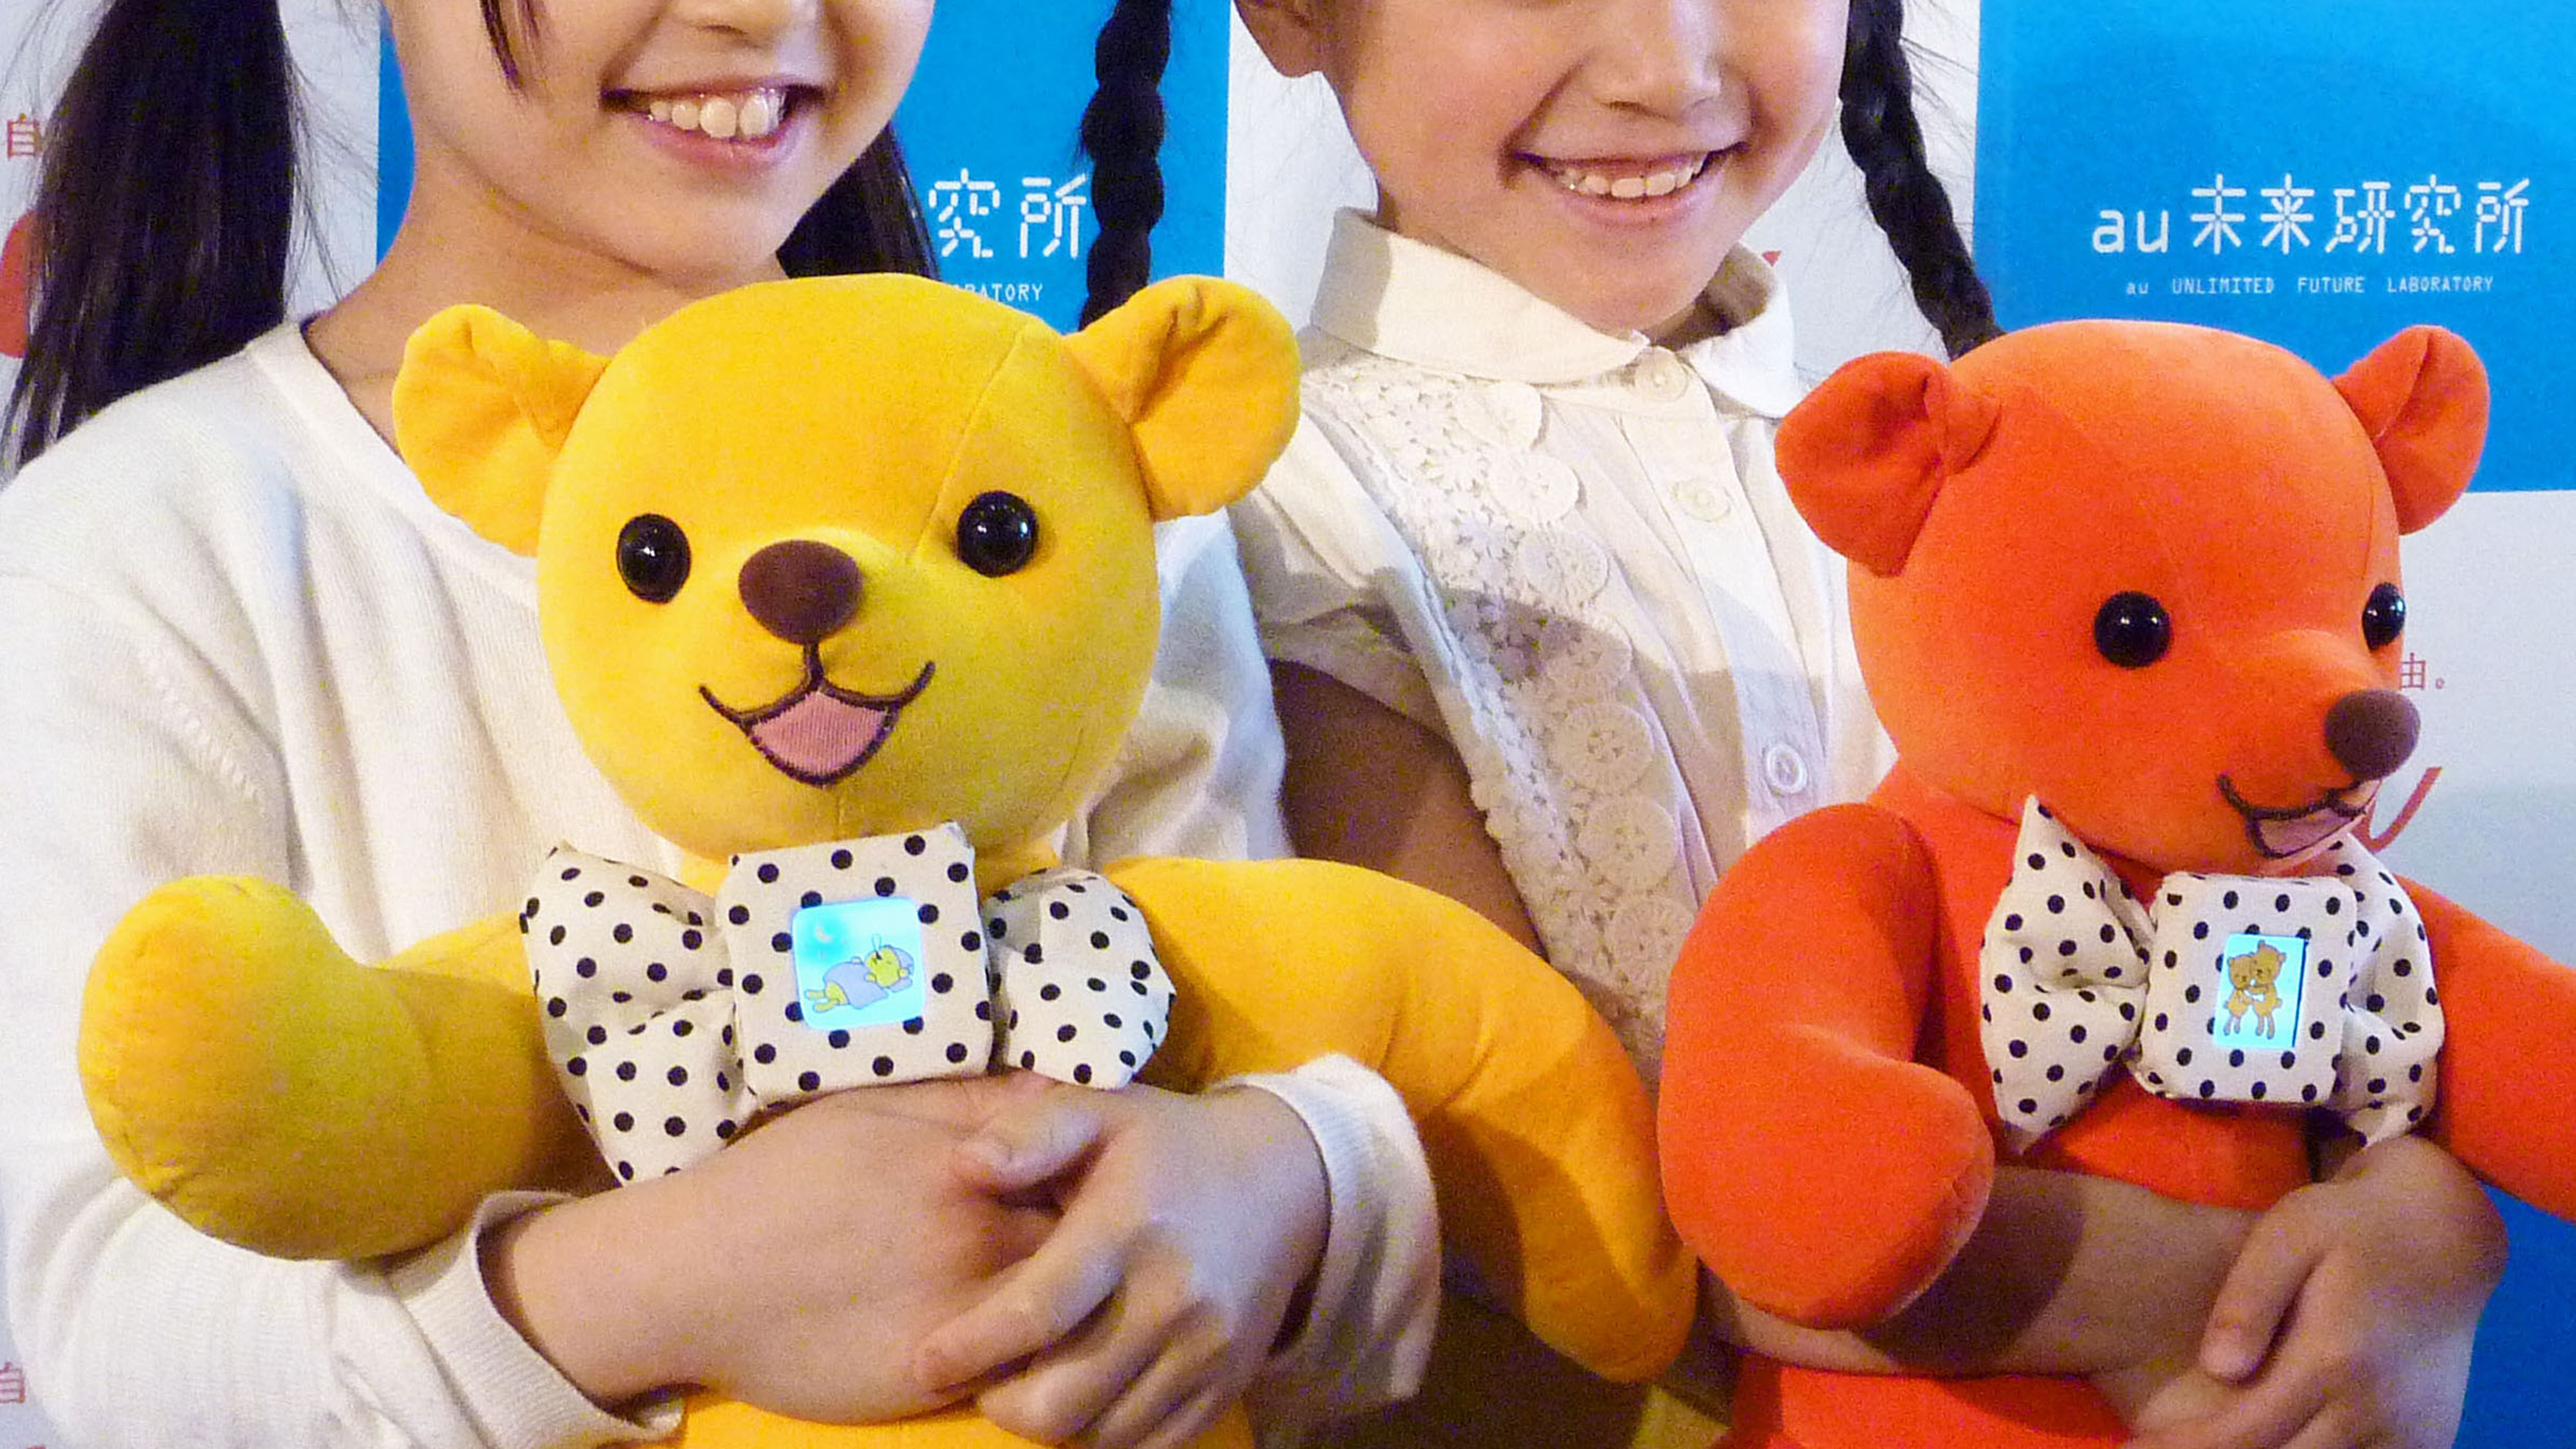 KDDI develops teddy bear-shaped communication tool